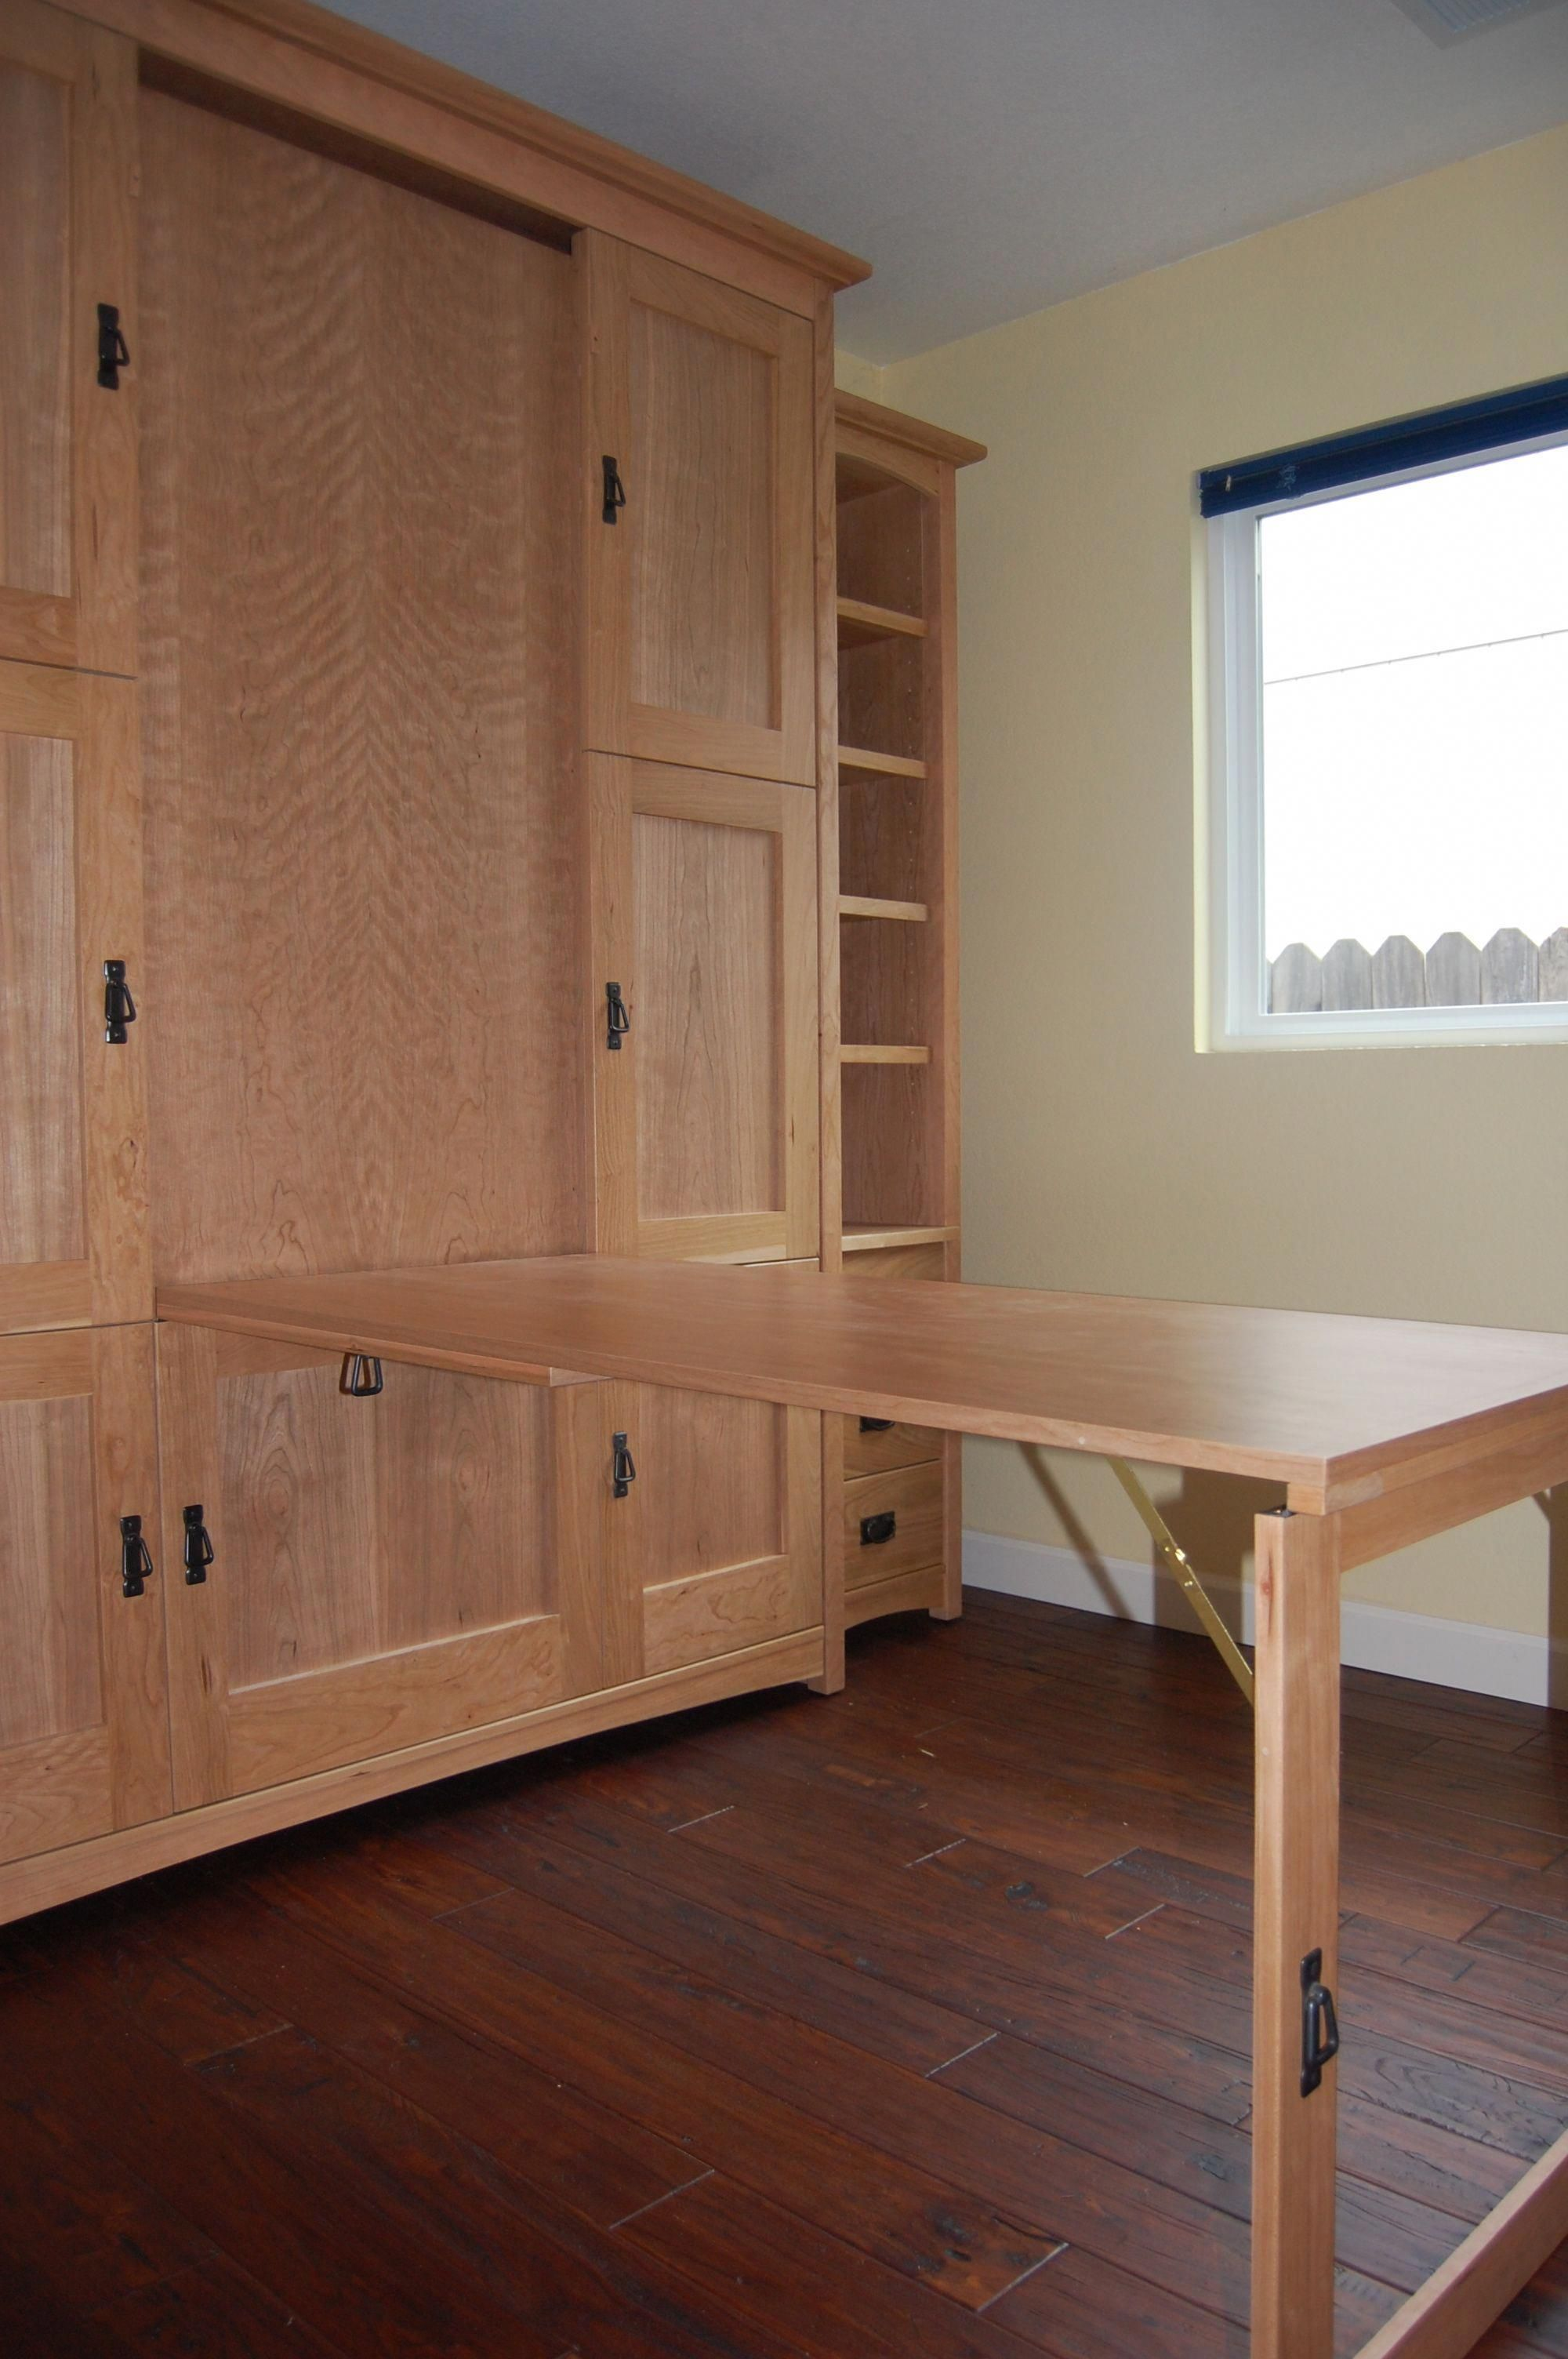 Wallbed murphy bed with hidden folddown table or desk perfect